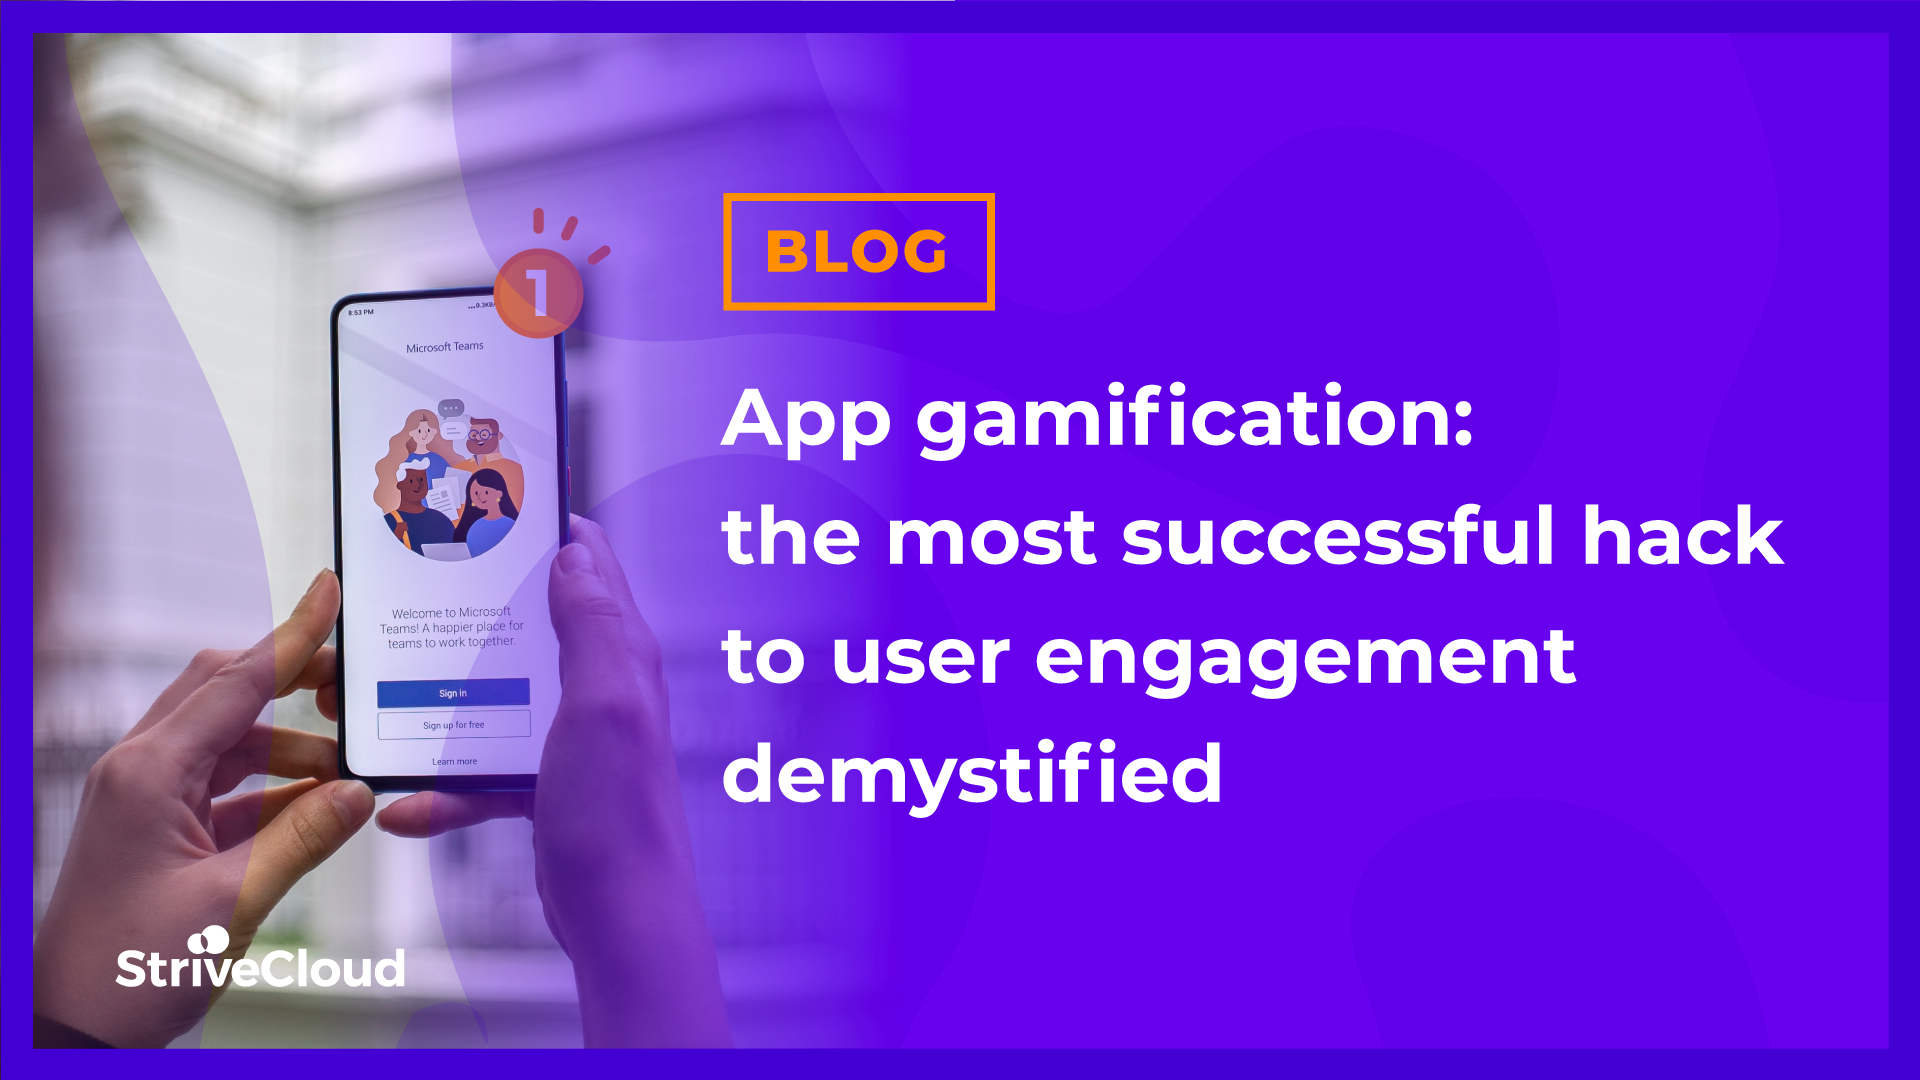 App gamification: The most succesful hack to user engagement demystified